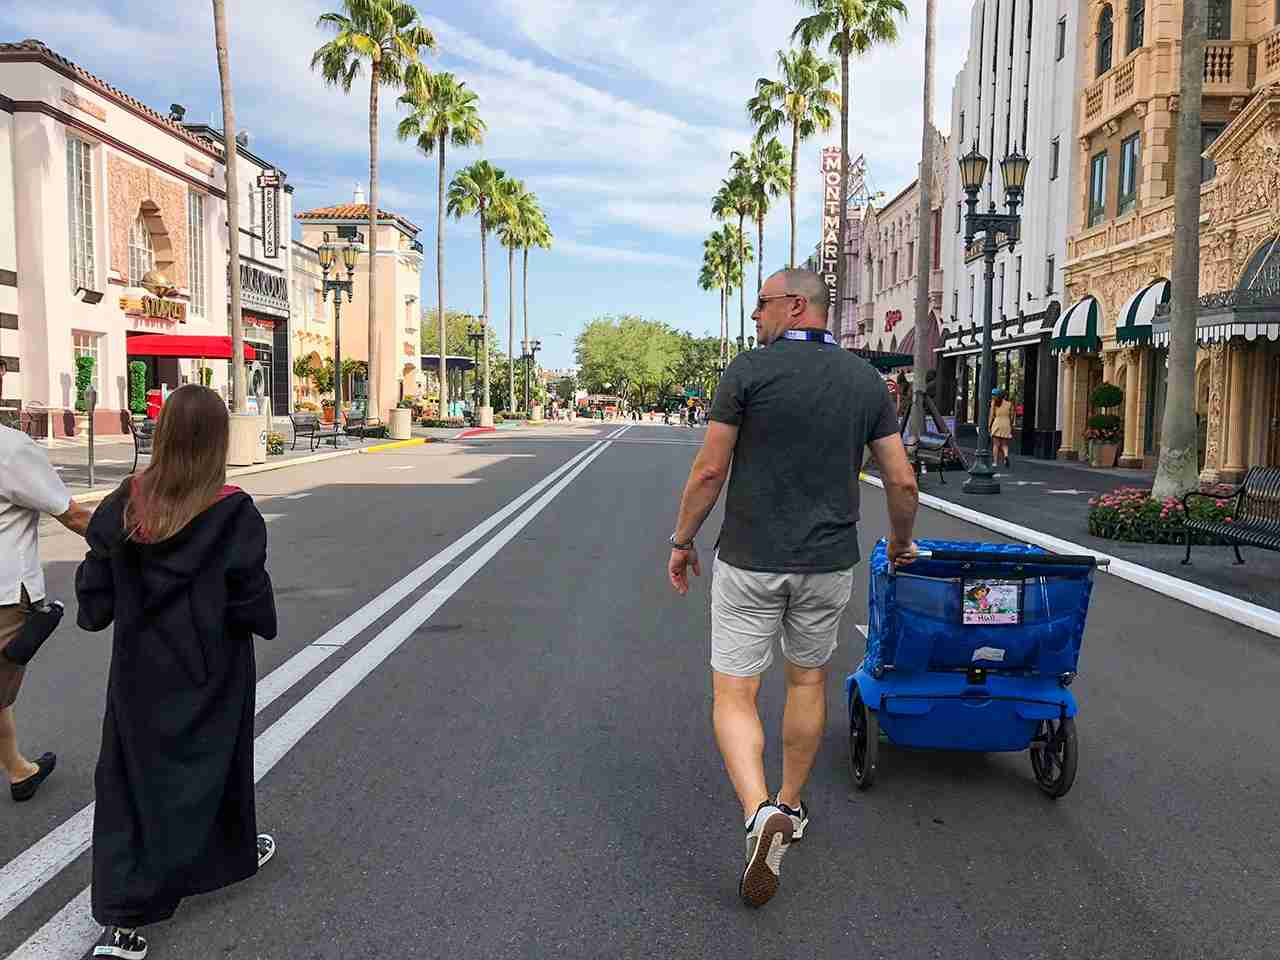 Manageable park size at Universal Studios